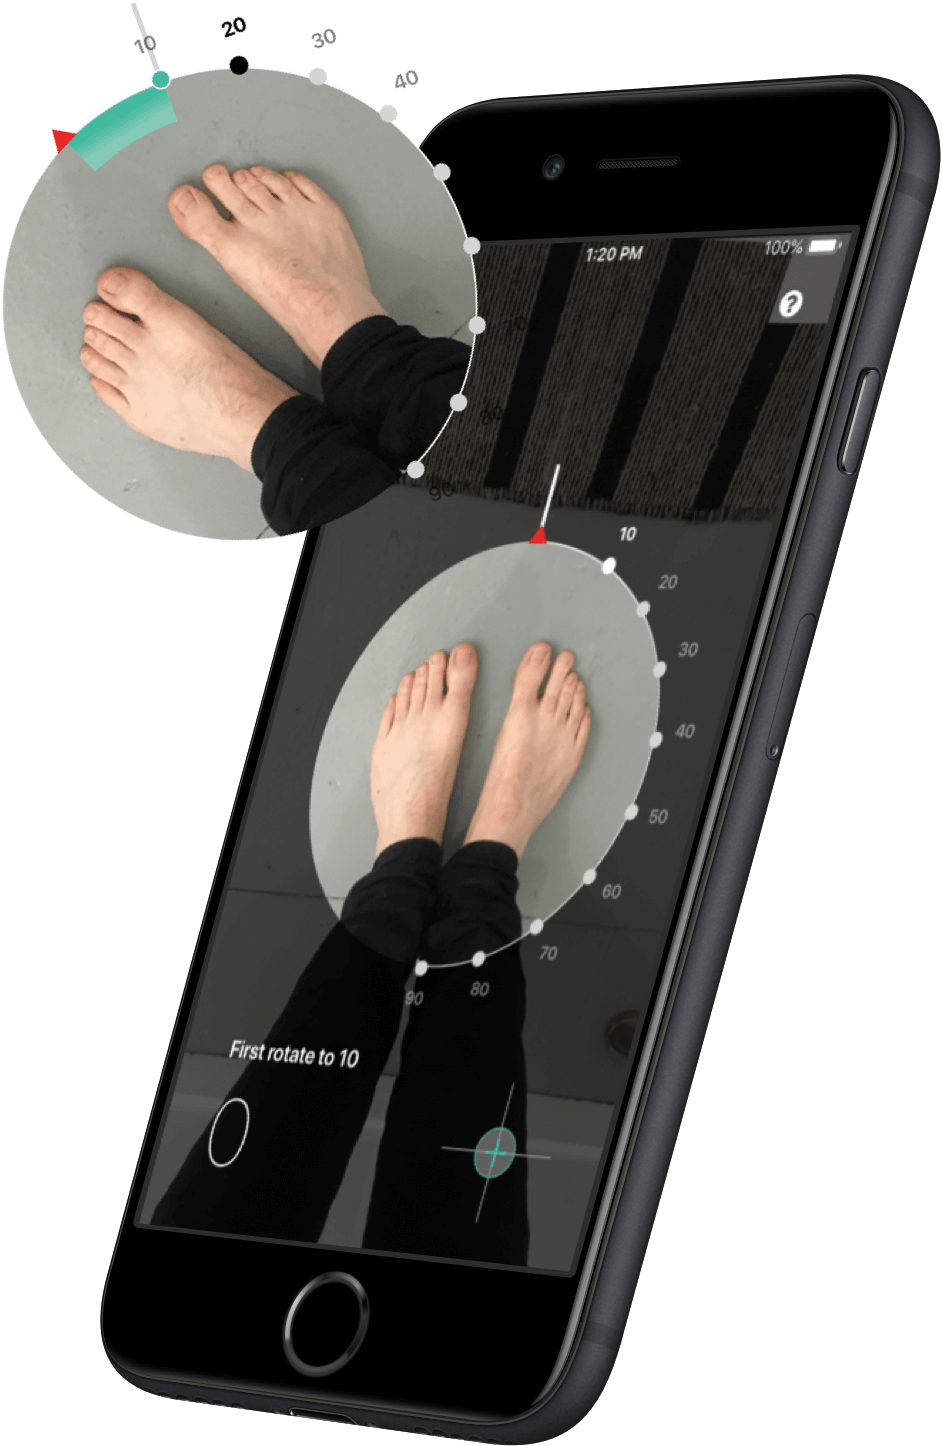 FTSY mobile app foot scanning screen